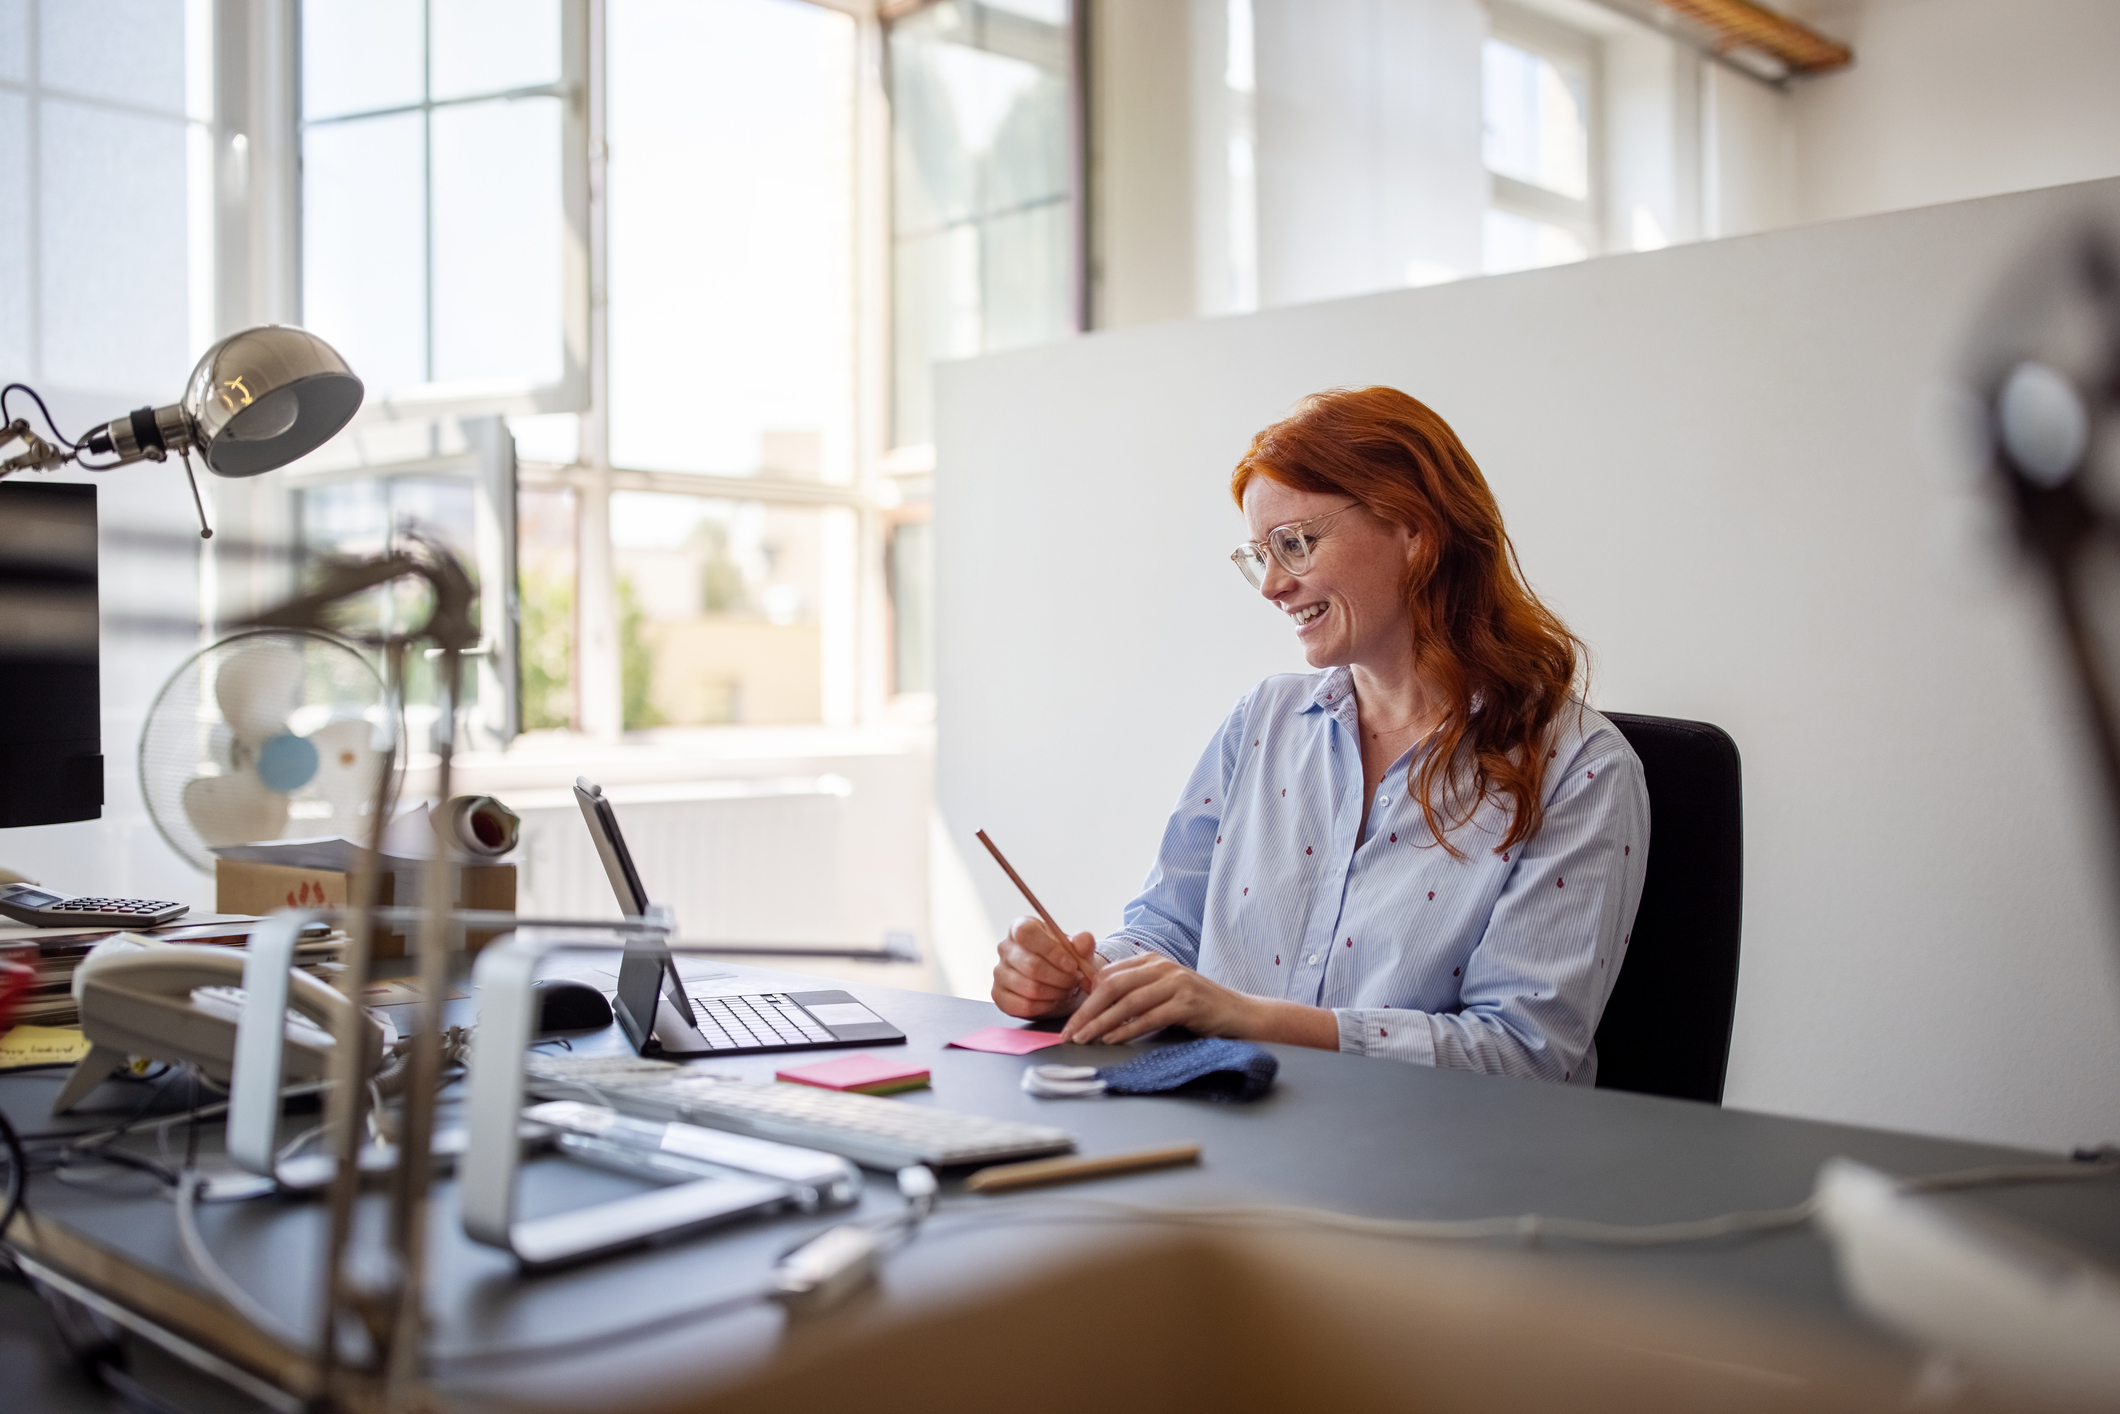 Businesswoman having teleconference from her office desk